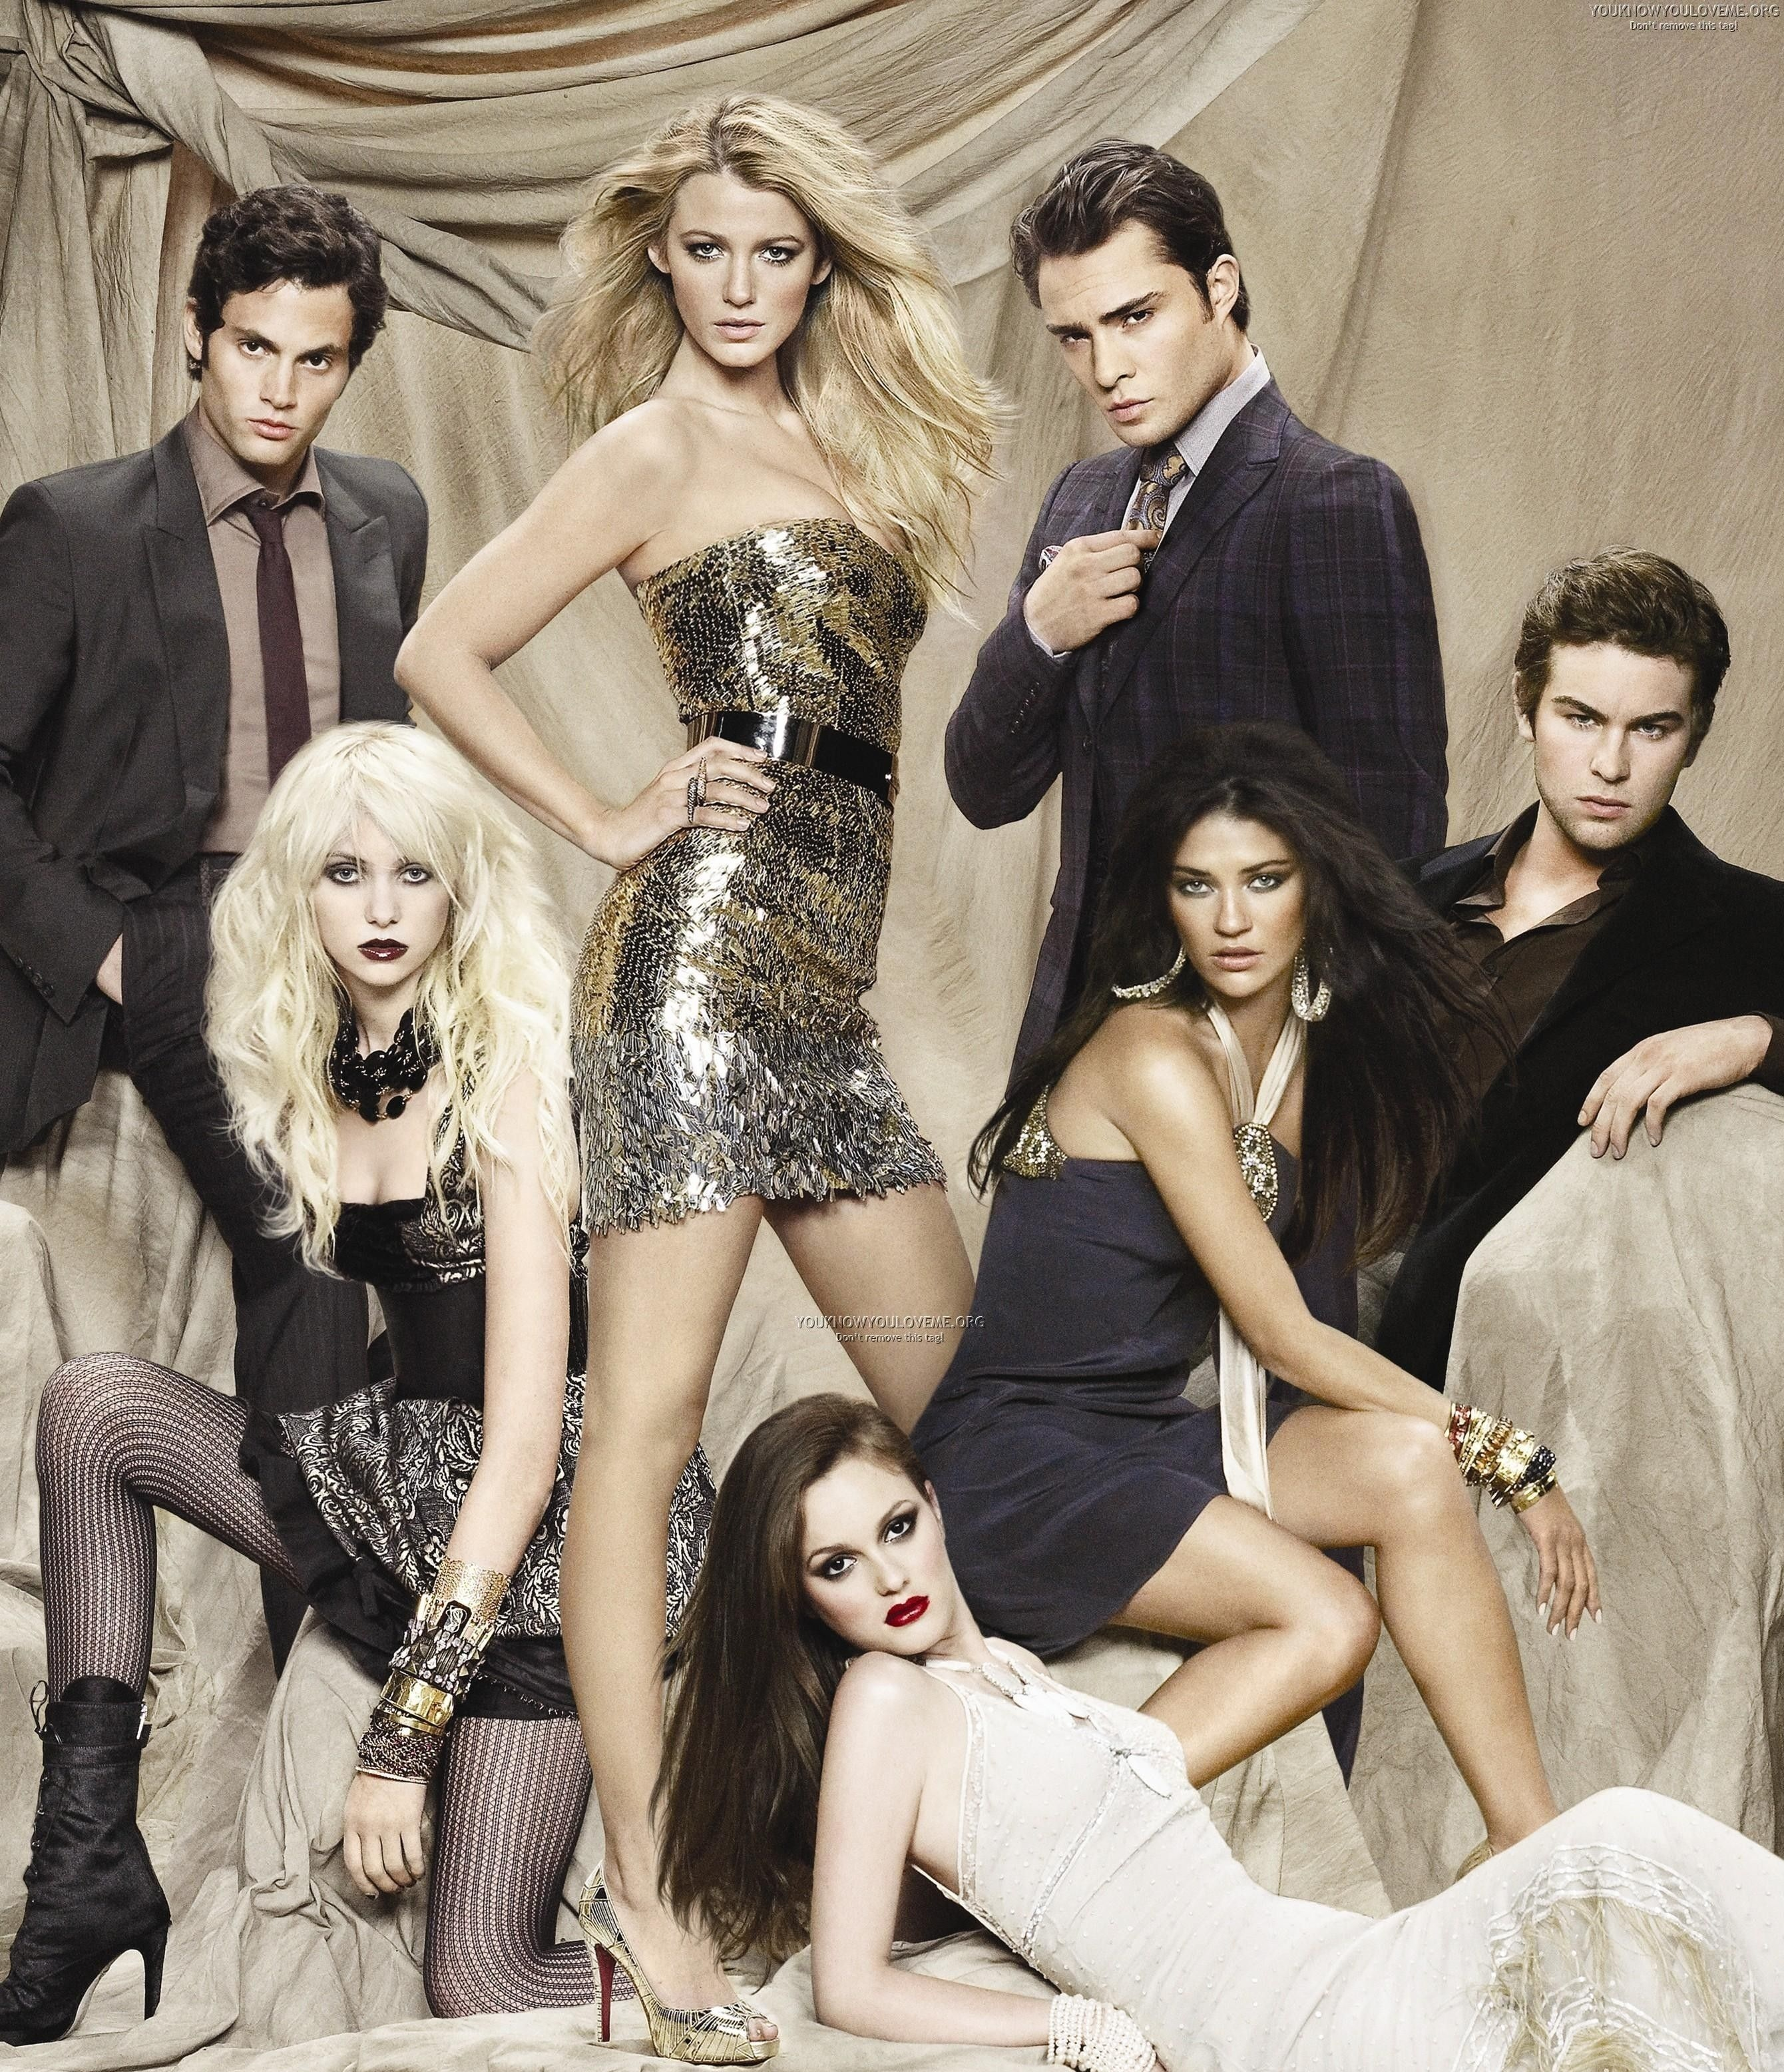 Gossip Girl Chuck And Blair Wallpaper Best Group Picture To Represent Season 3 Poll Results